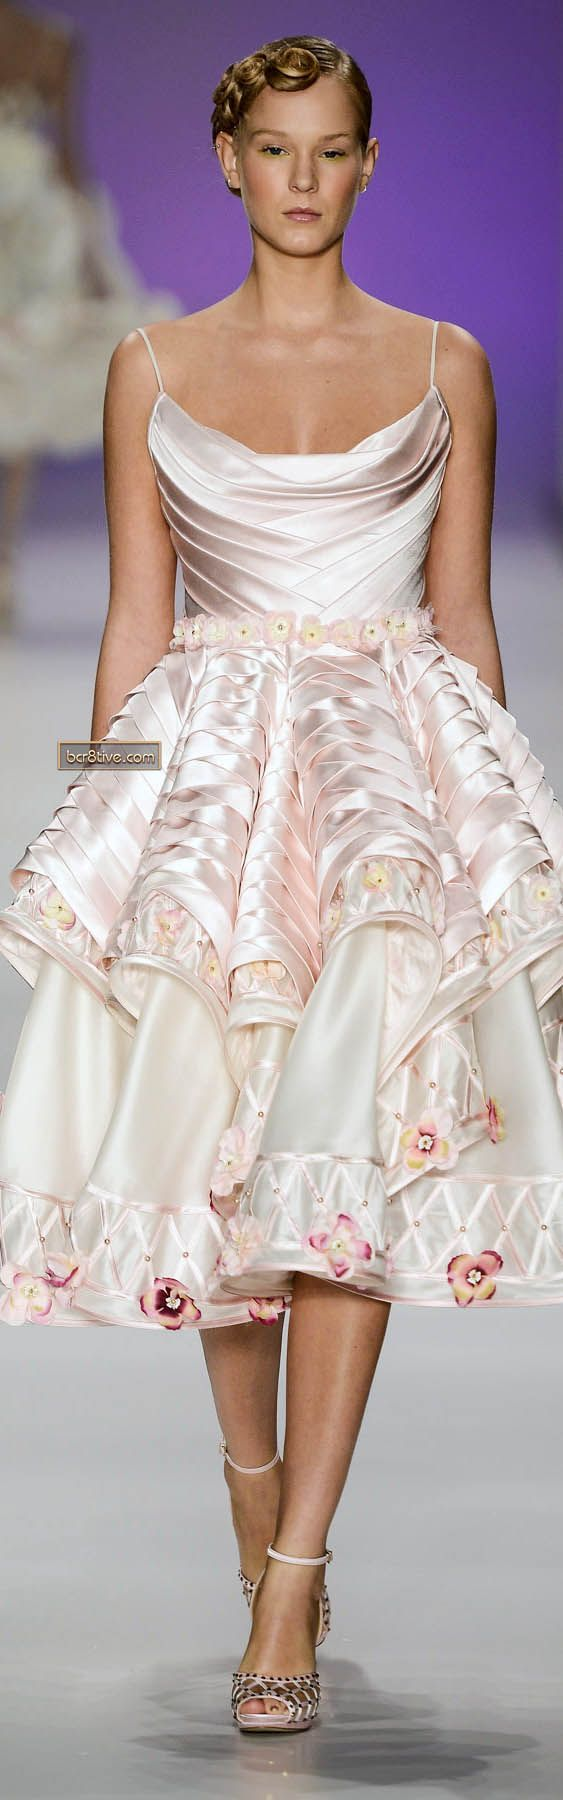 Samuel Cirnansck Sao Paulo Spring Summer 2014- this would be such a cute wedding dress if I were into a short one.: